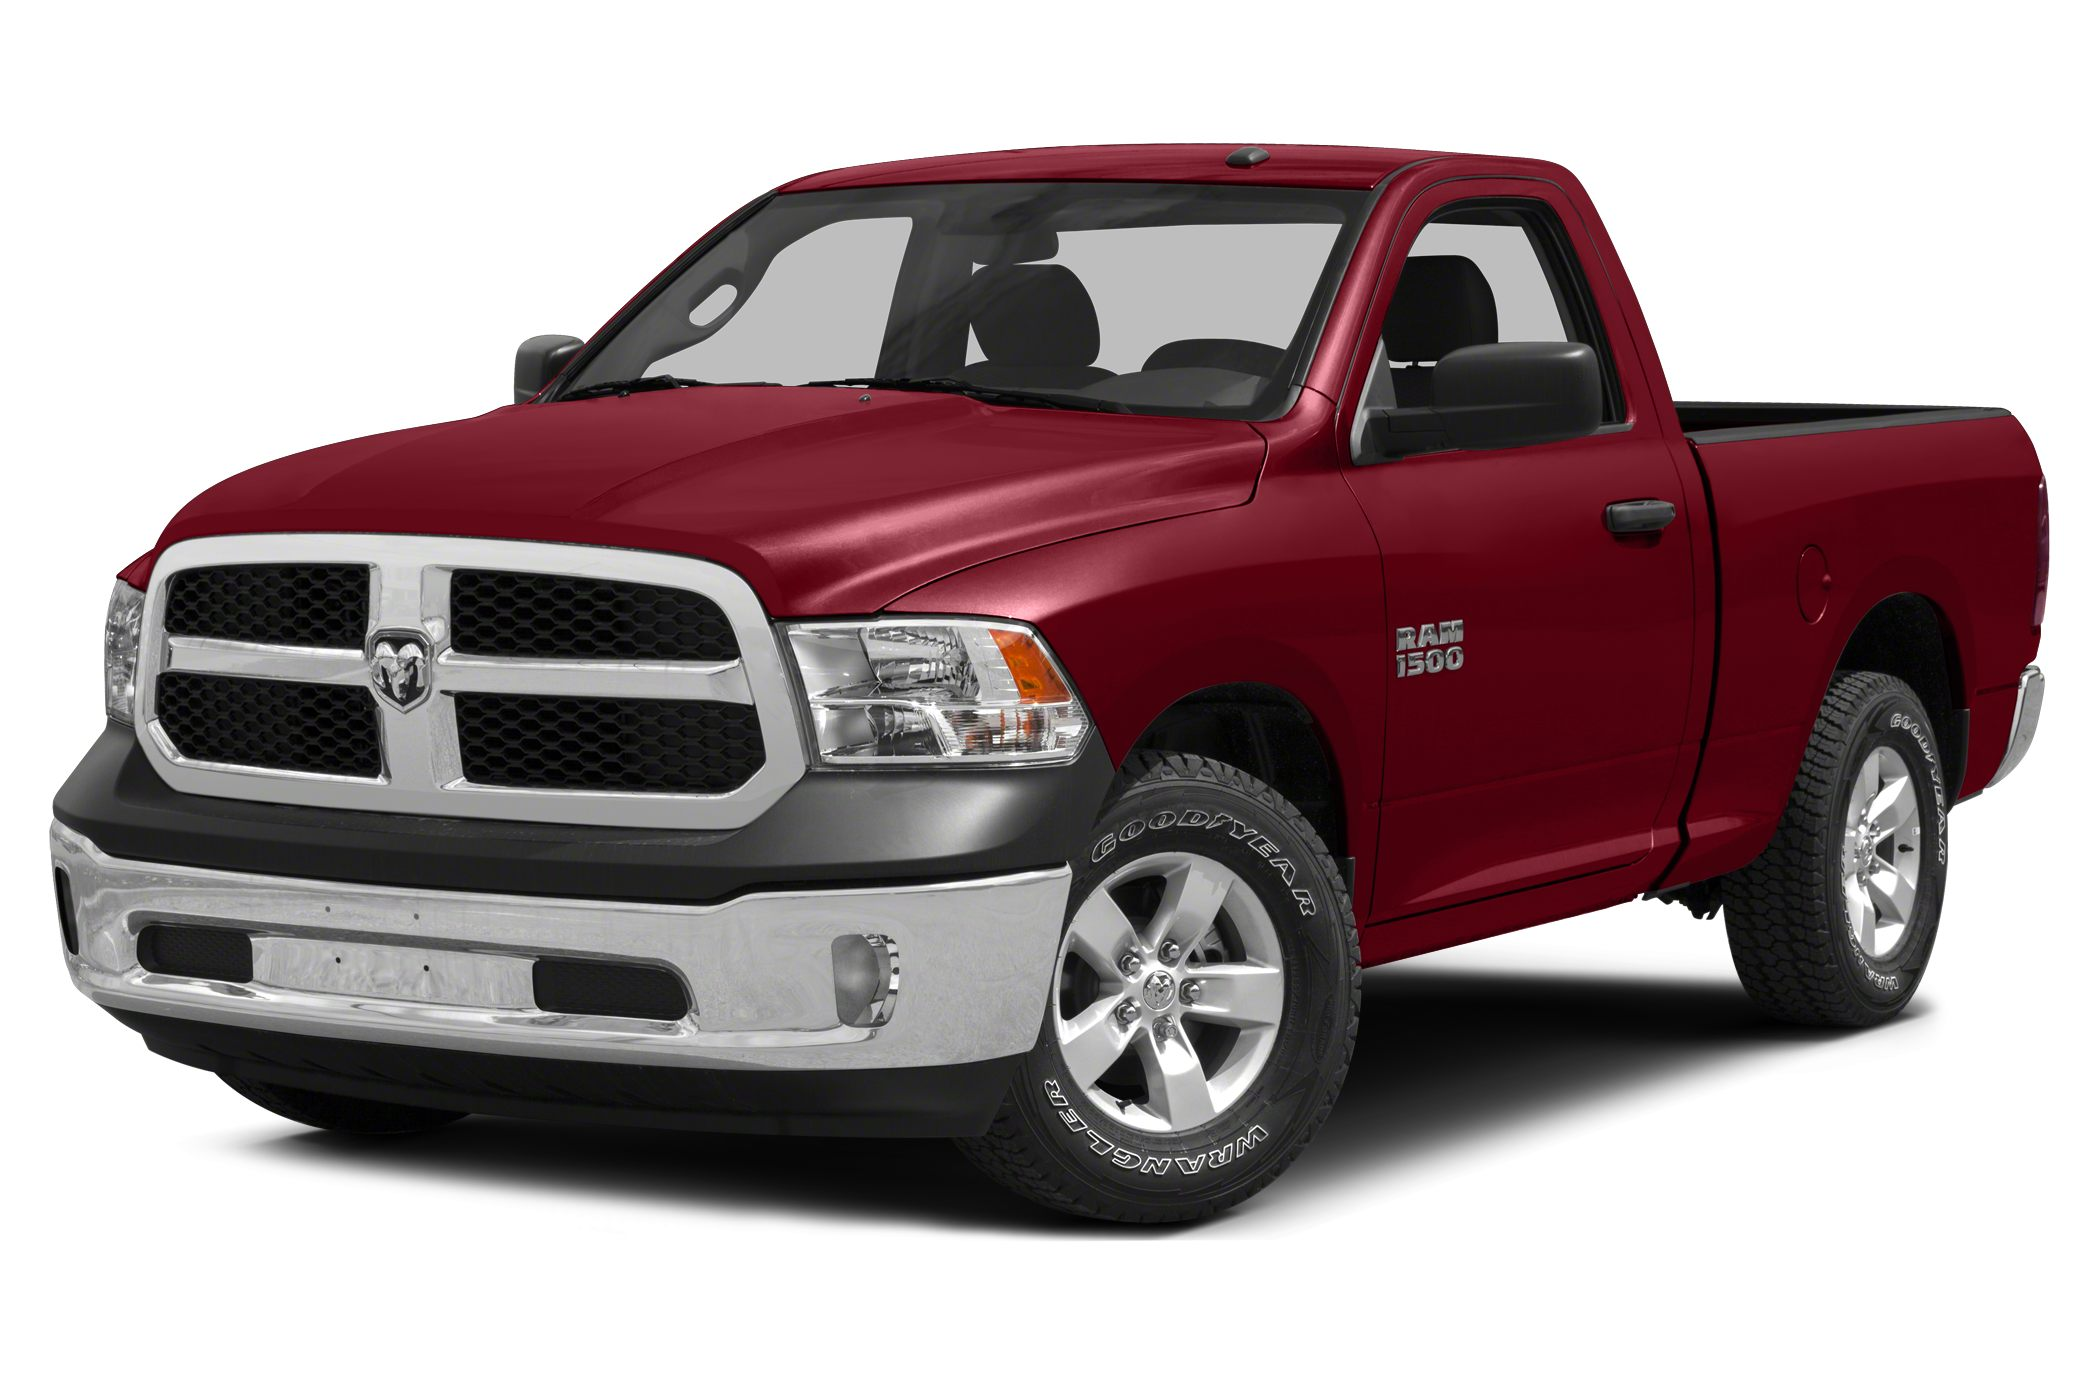 2015 RAM 1500 Tradesman/Express Regular Cab Pickup for sale in Watertown for $33,920 with 0 miles.